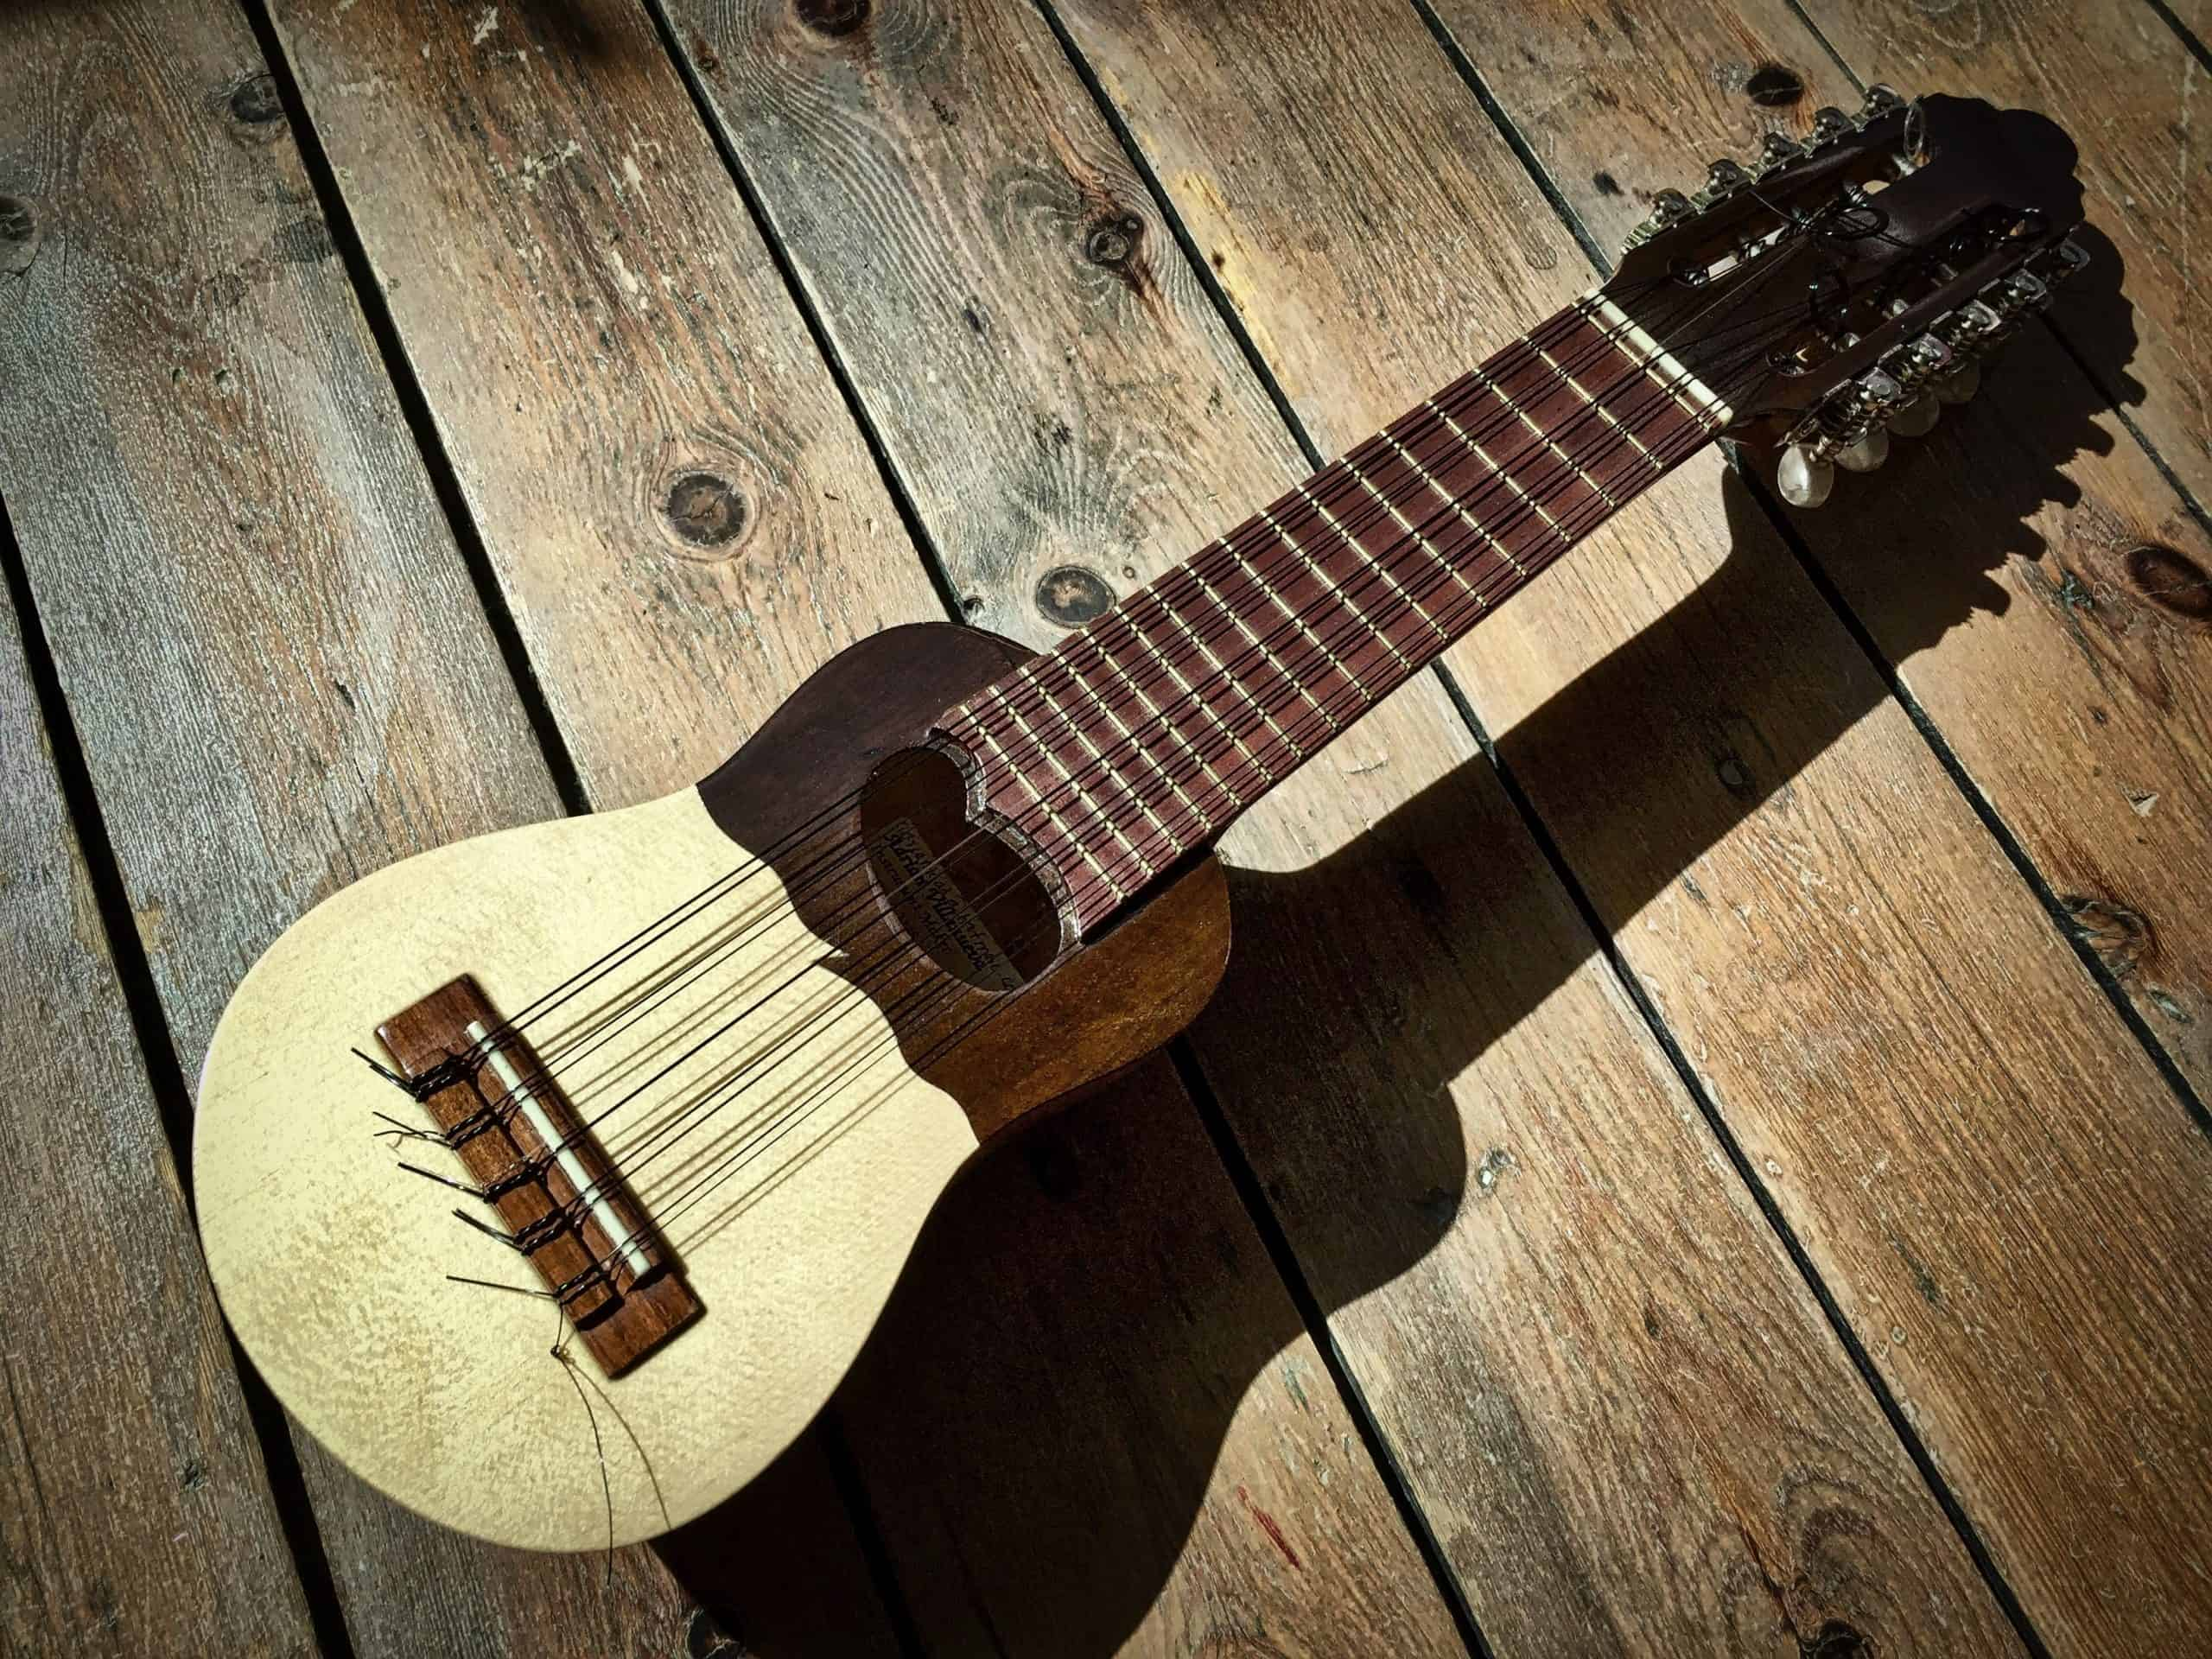 A beautiful looking charango instrument.